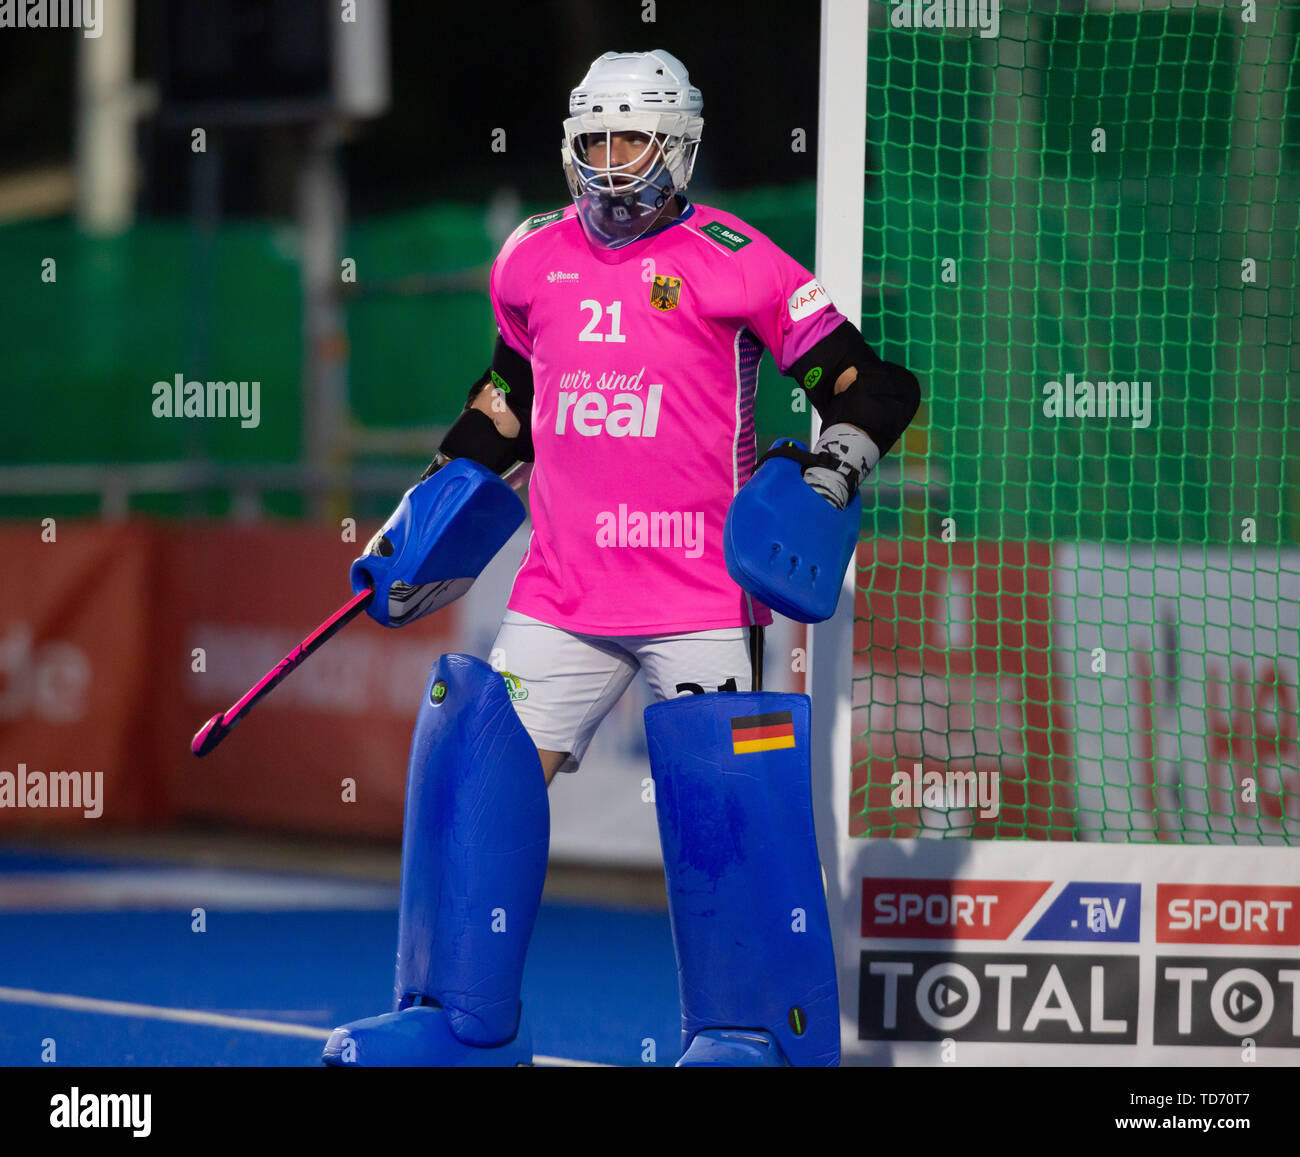 Krefeld, Germany, 12.06.2019, Hockey, FIH Pro League, men, Germany vs. Belgium: Tobias Walter (Germany) looks on. - Stock Image